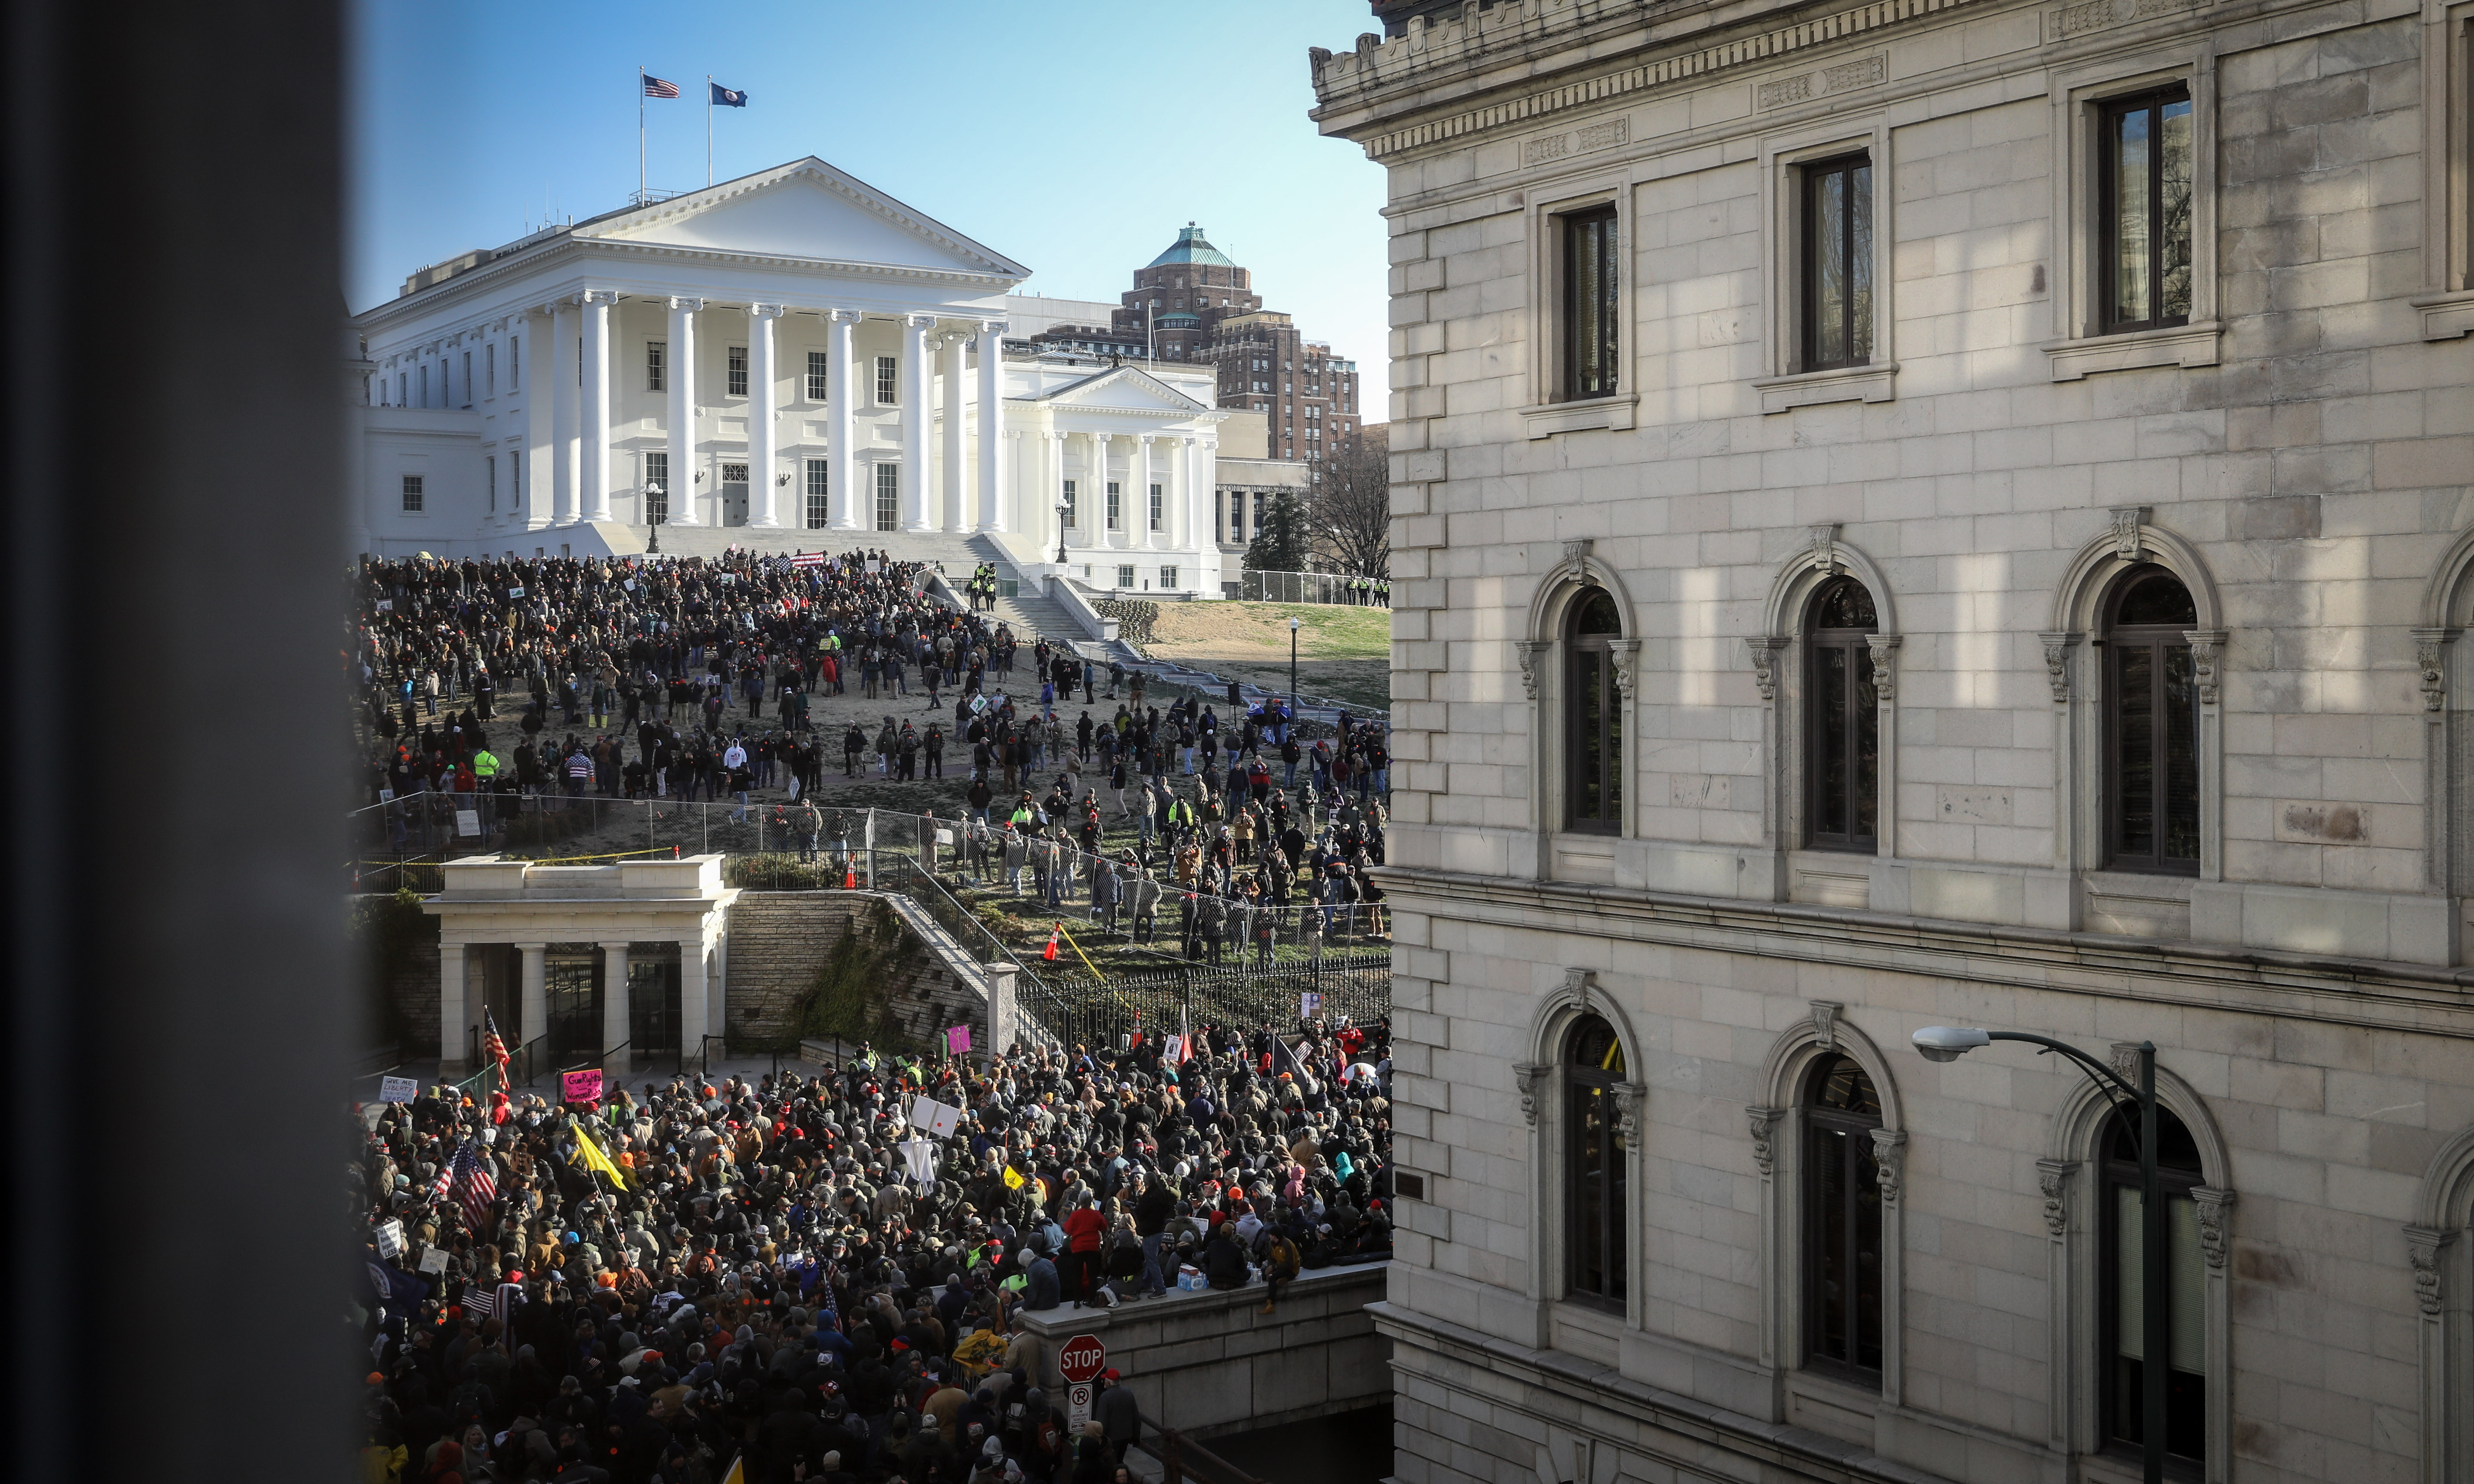 Over 18,000 Second Amendment Advocates Converge Peacefully on Virginia's State Capitol